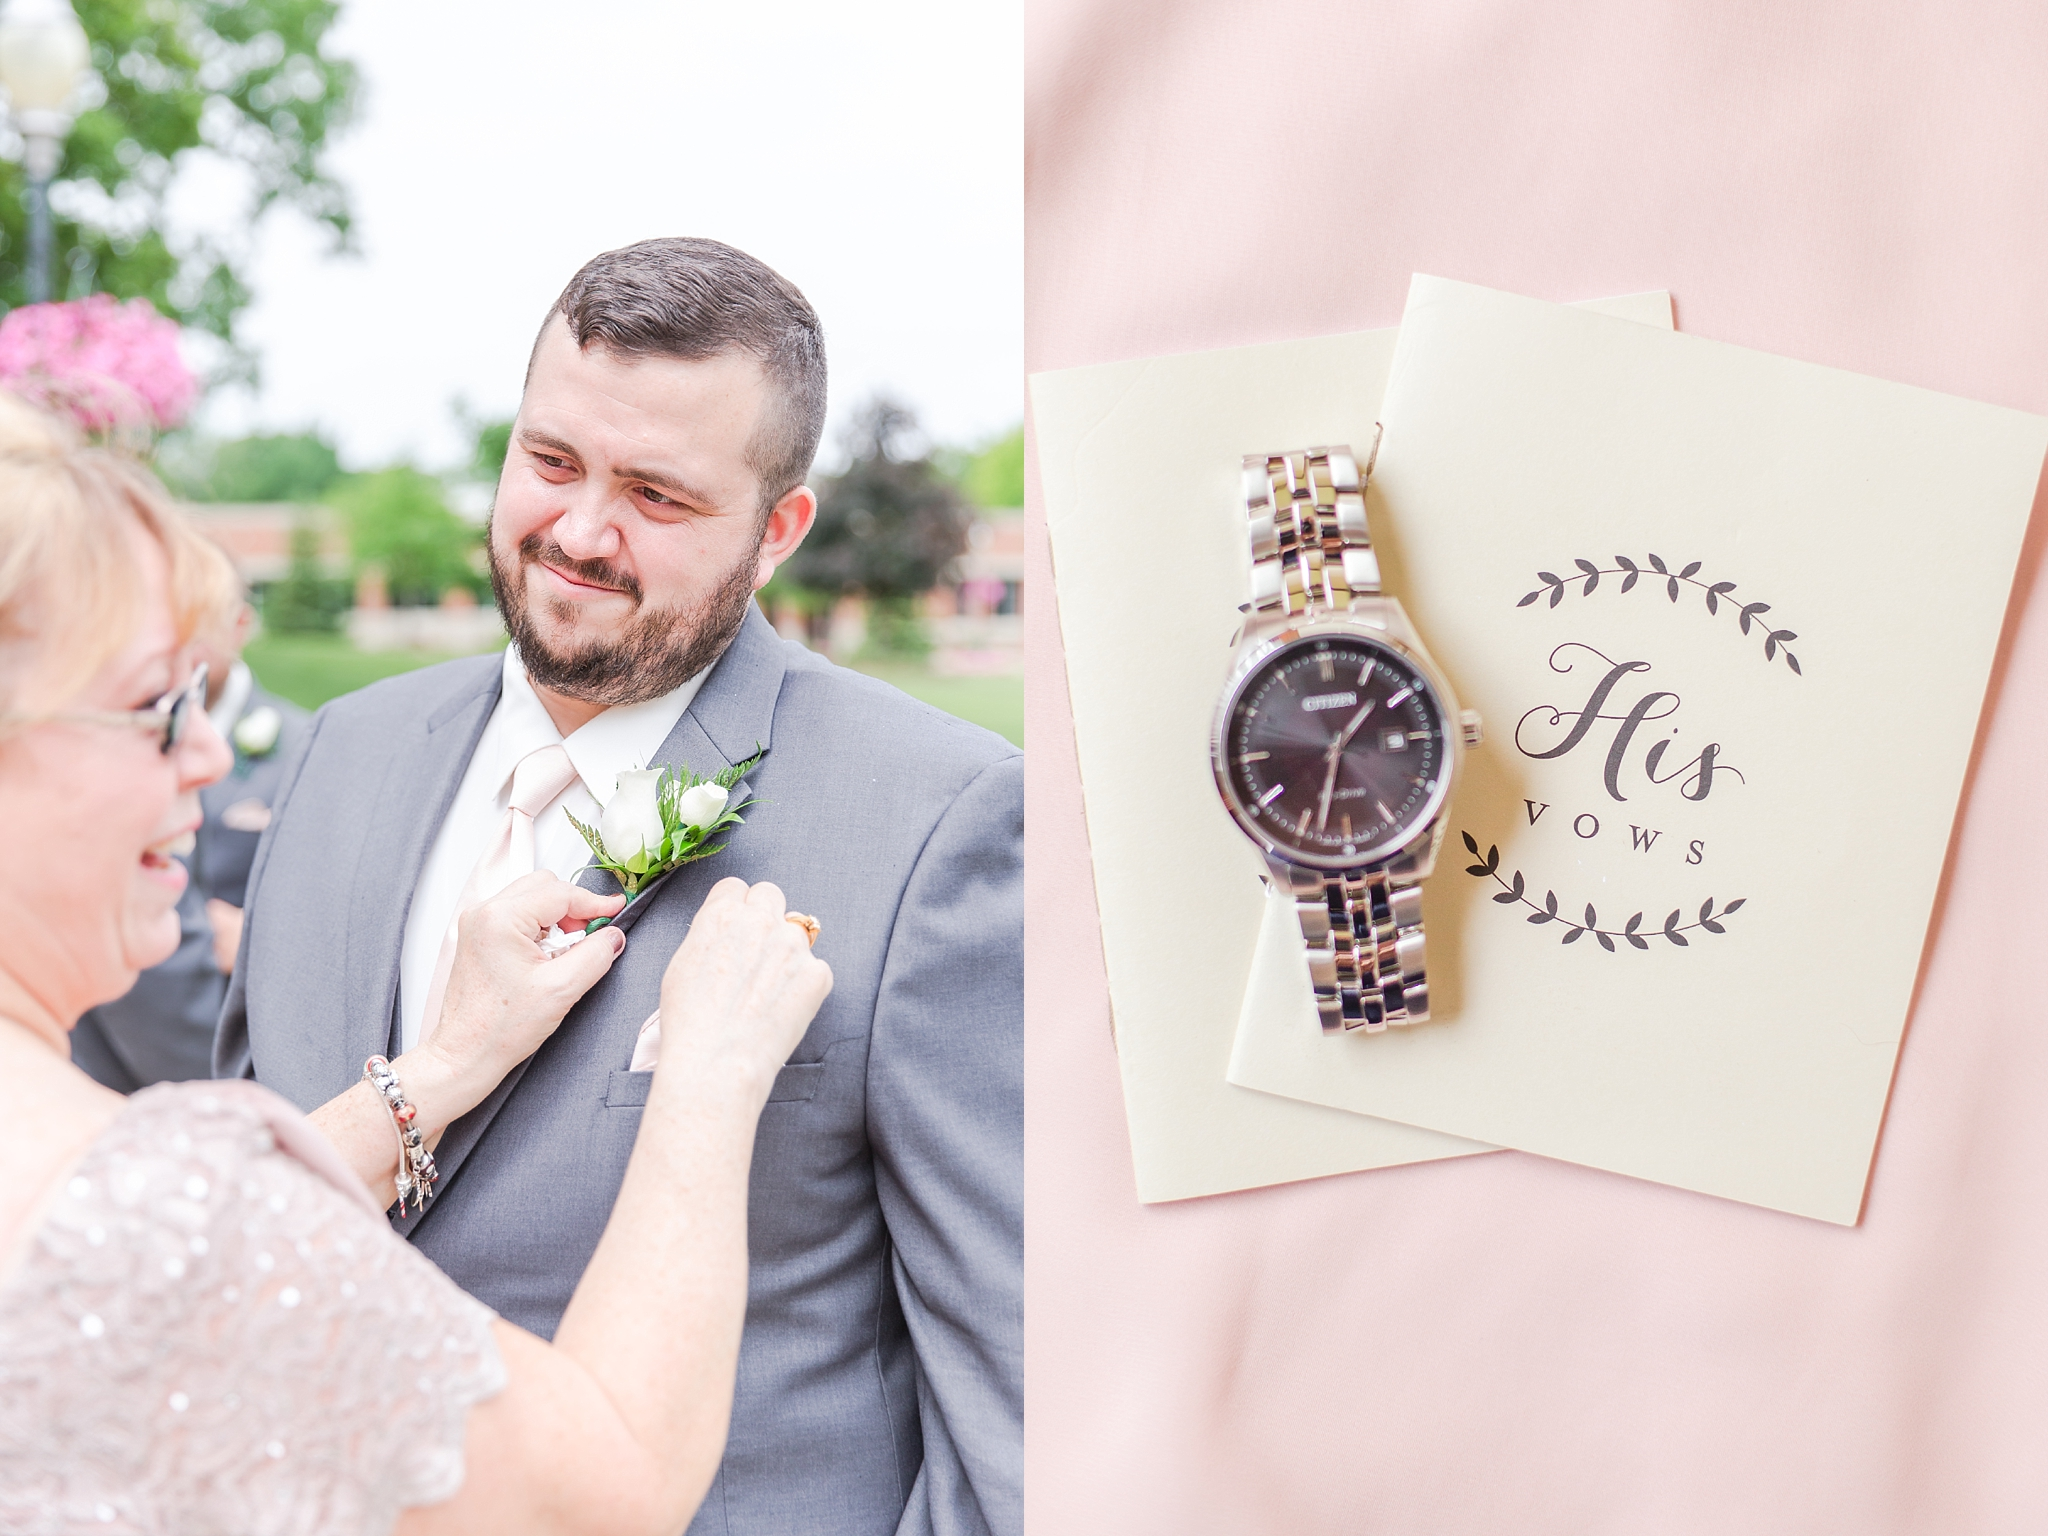 emotional-laid-back-romantic-wedding-photos-at-adrian-college-herrick-chapel-in-adrian-michigan-by-courtney-carolyn-photography_0009.jpg